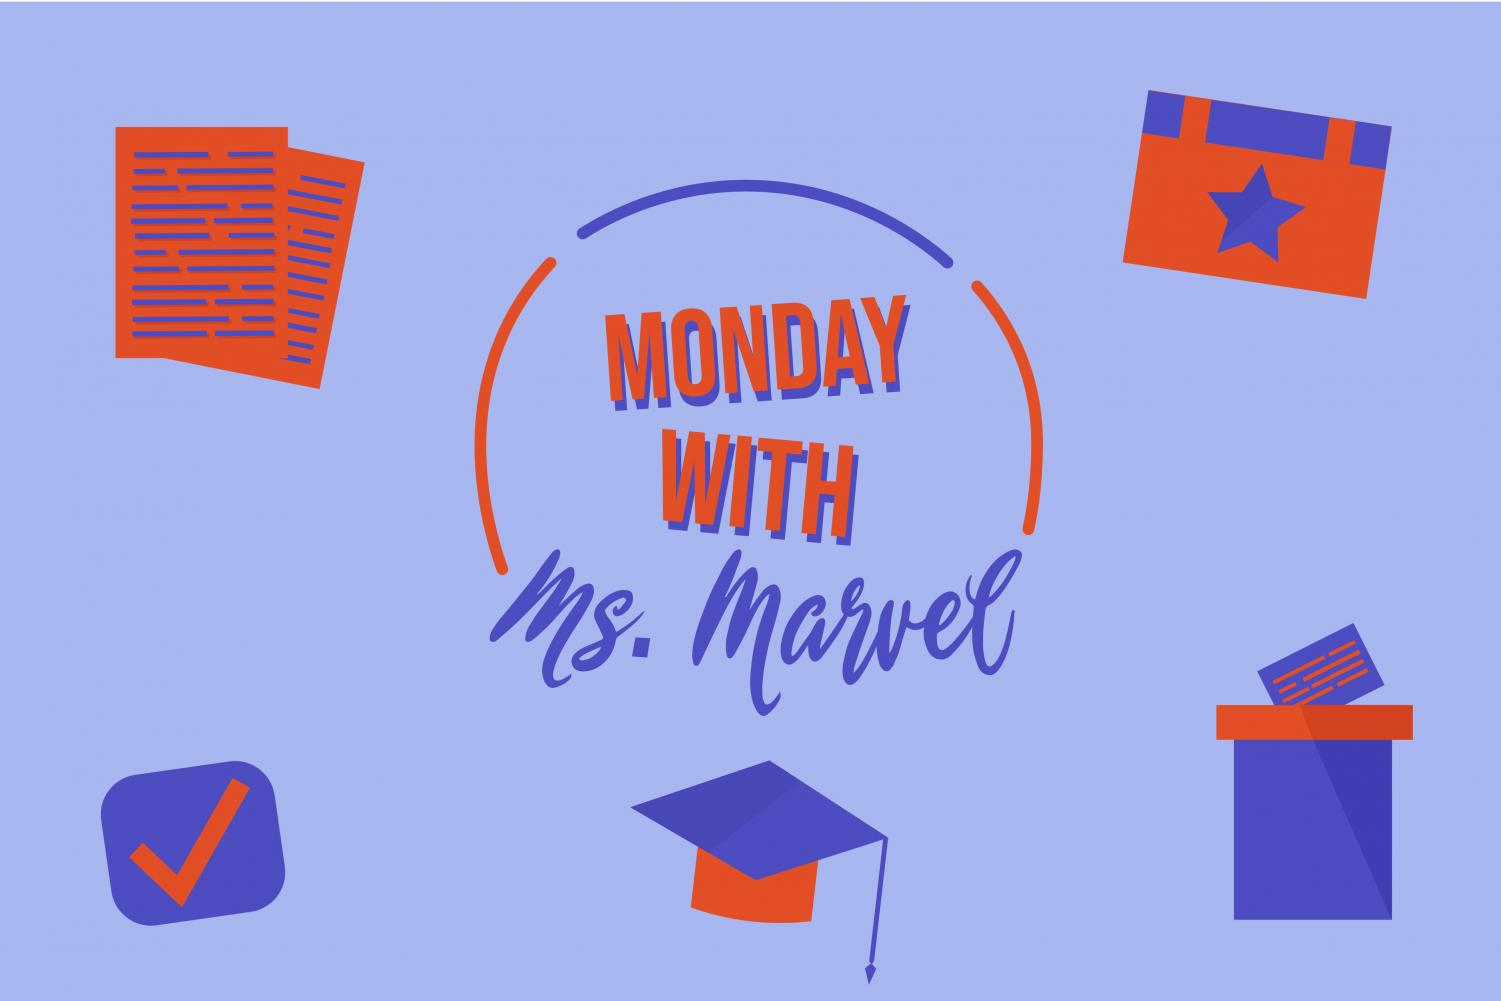 In her weekly column, Monday with Ms. Marvel, Wingspan's Trisha Dasgupta reviews different political issues and relatable topics in everyday life.